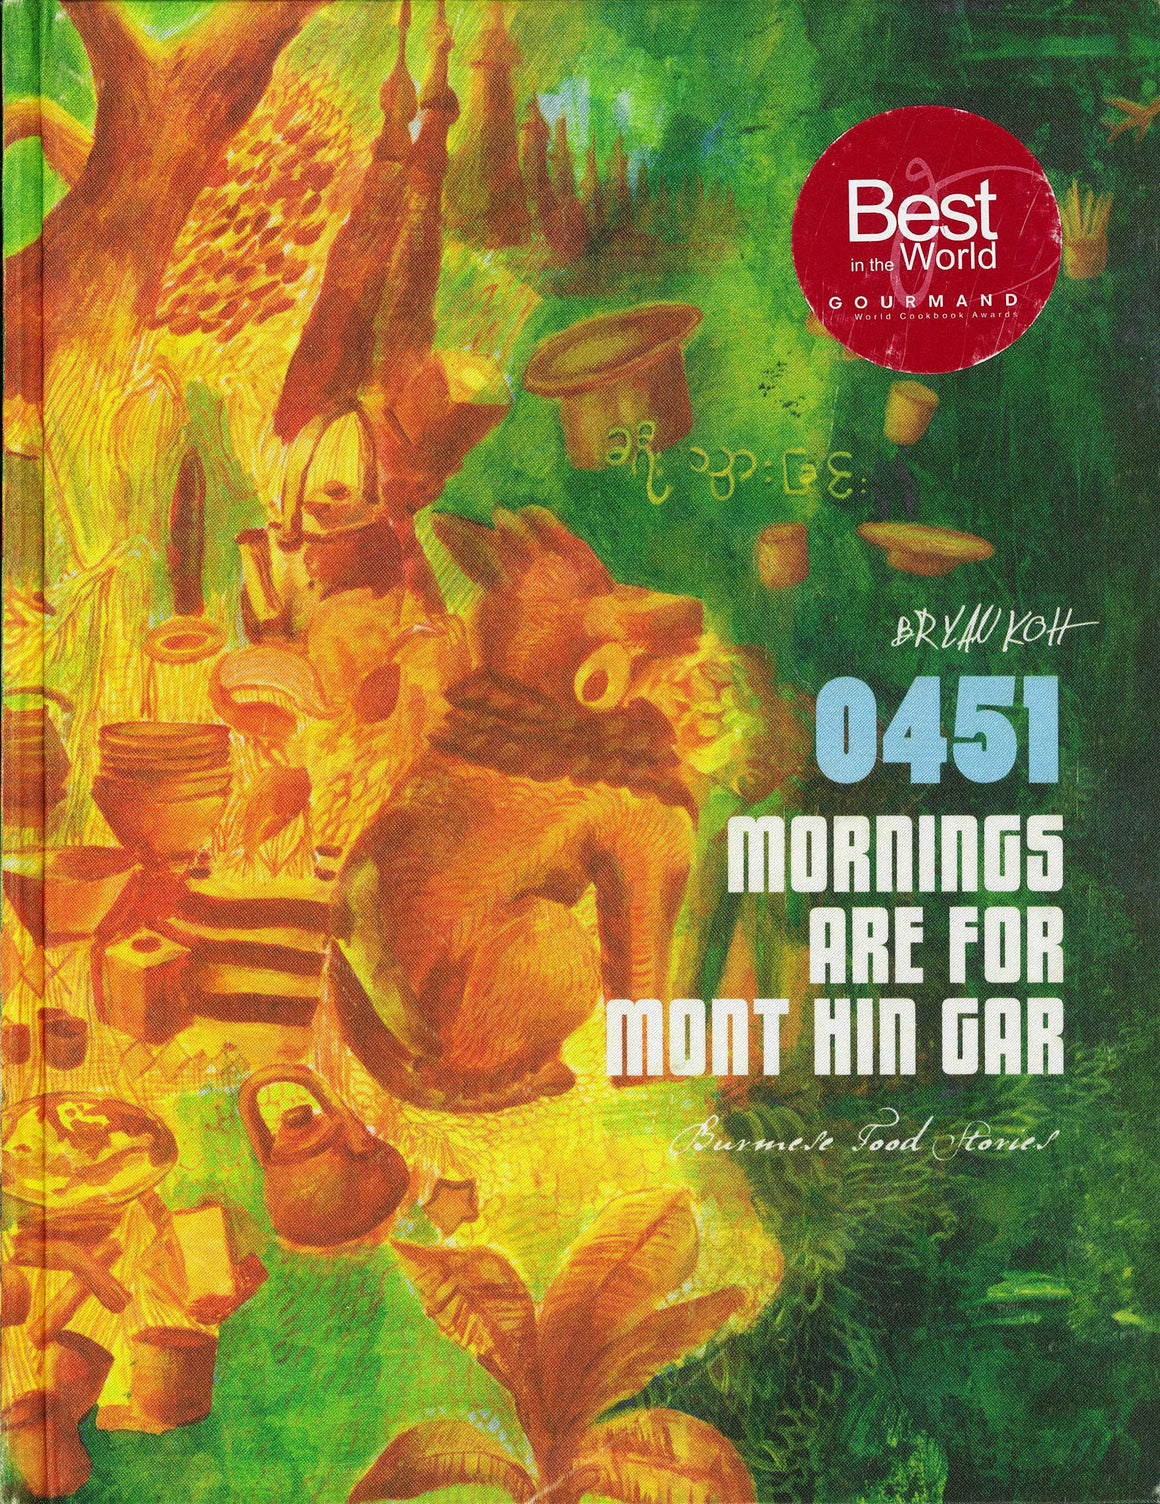 Bryan Koh. 0451 Mornings are for Mont Hin Gar: Burmese Food Stories